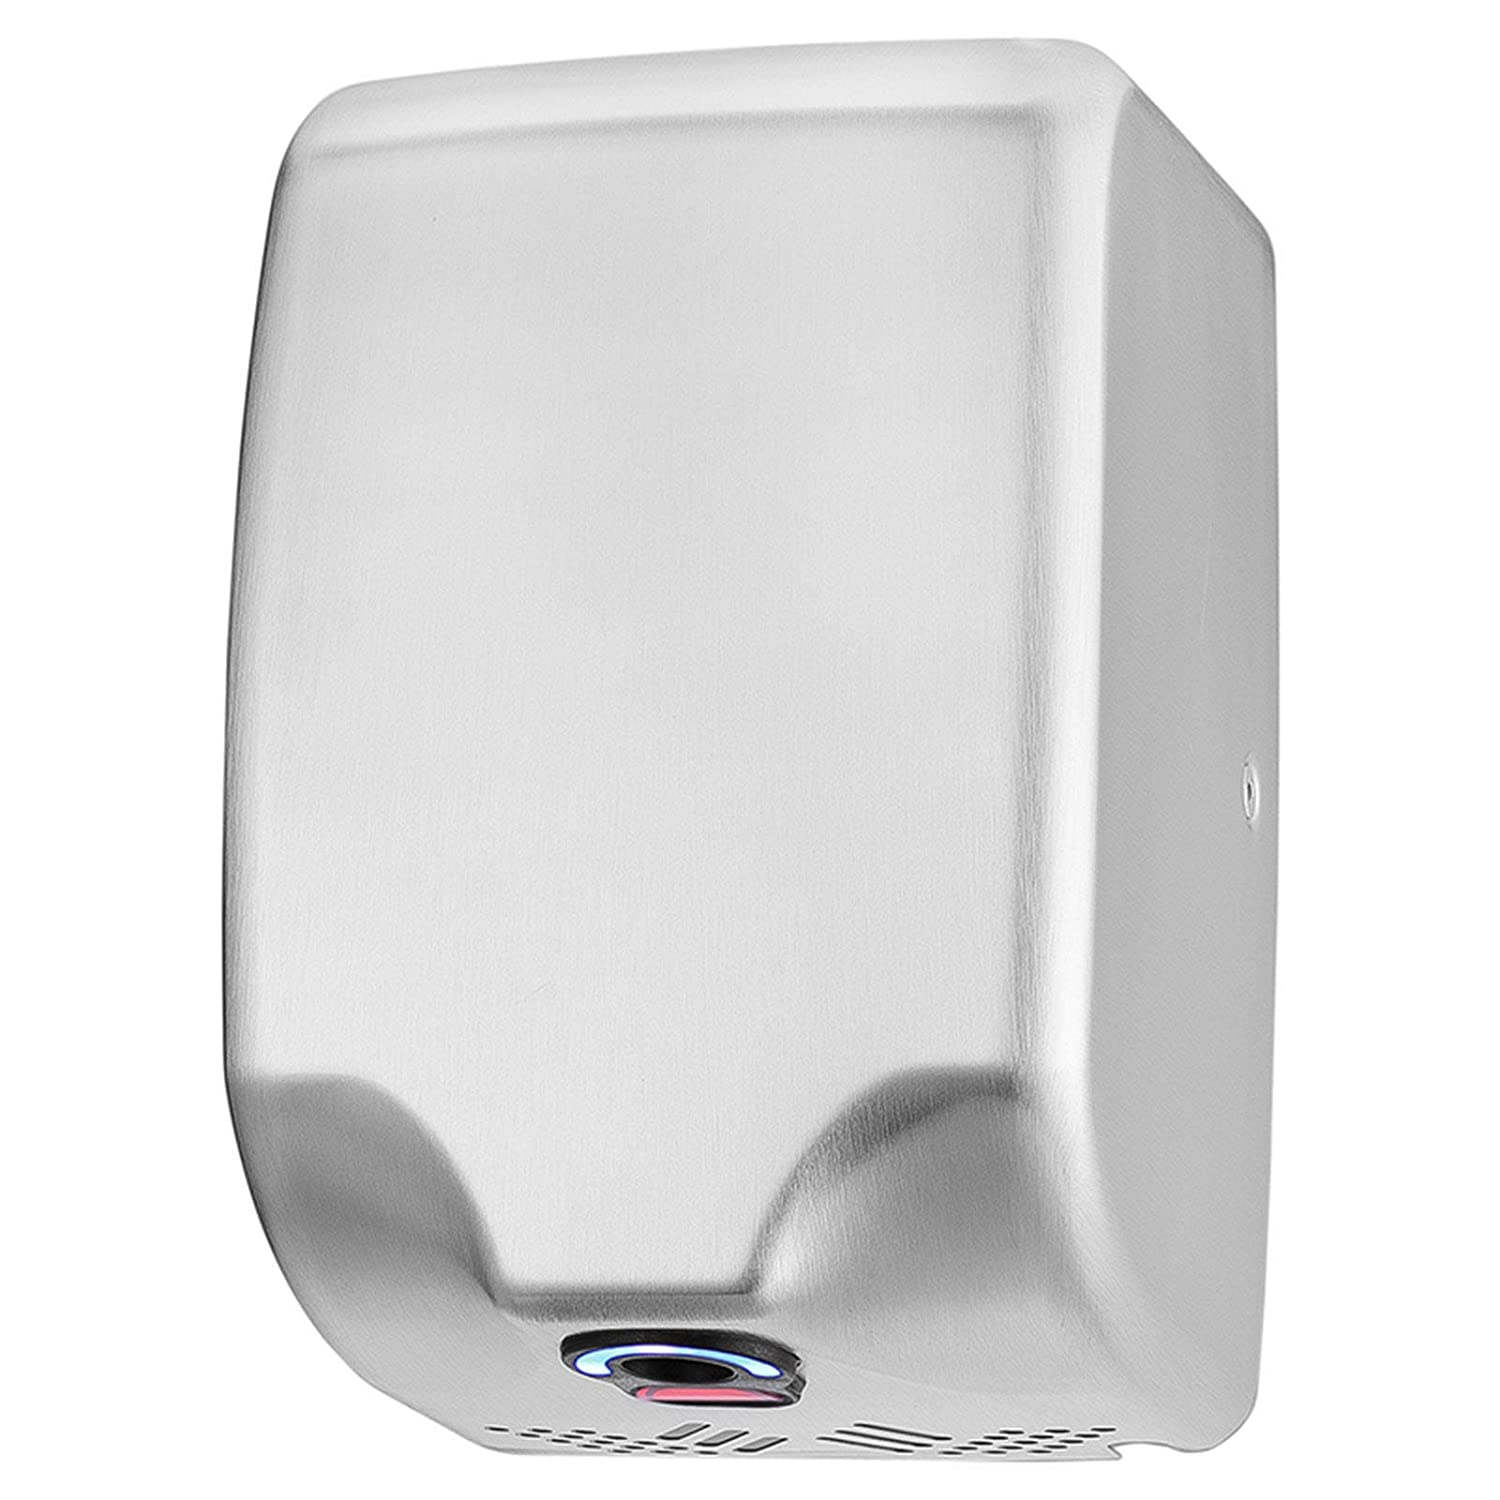 Automatic Sensor,High Speed With Low Noise 70db,Hot//Cold Air,Stainless Steel 304 Cover,Innovative Compact Design Easy Installation. Electric Hand dryers for Bathrooms Commercial,120V//1350W Powerful